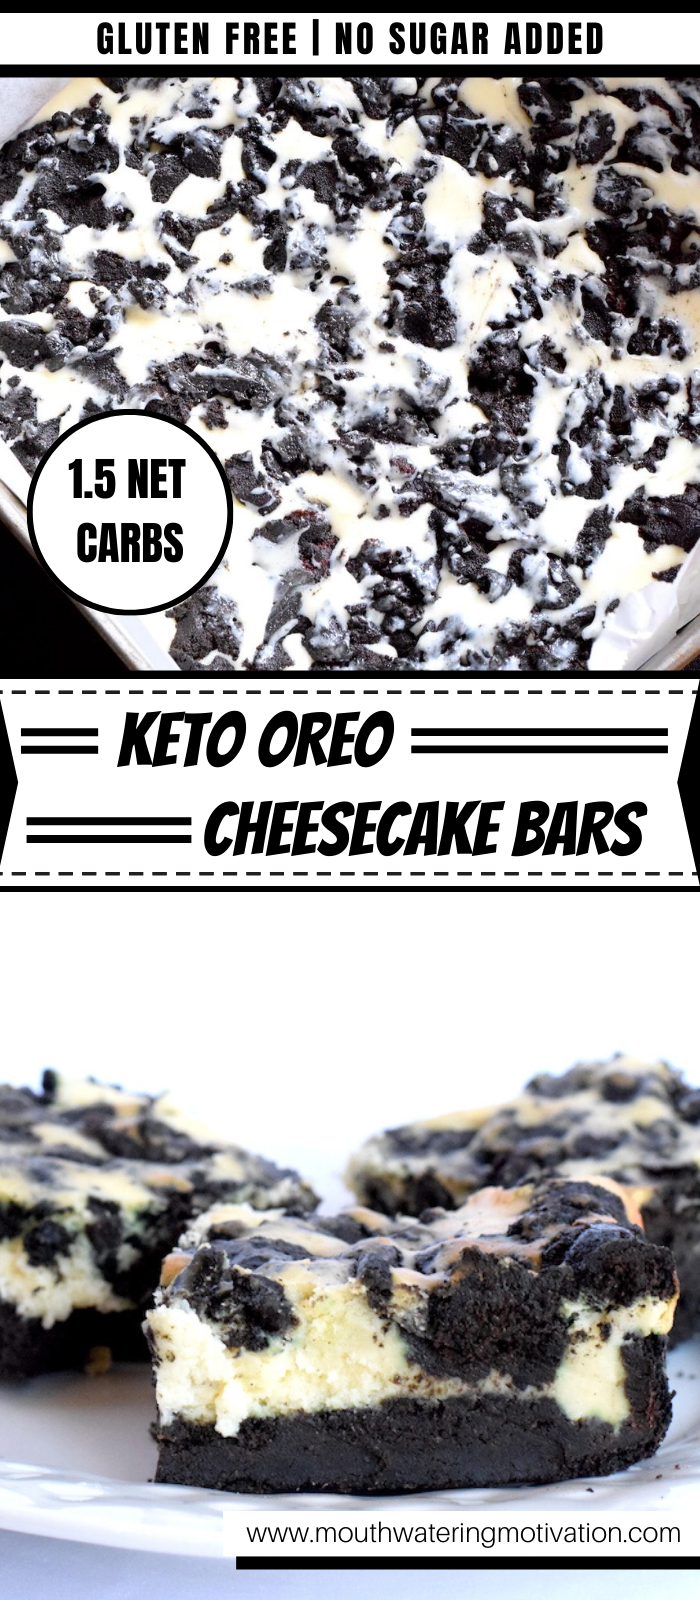 keto oreo cheesecake bars